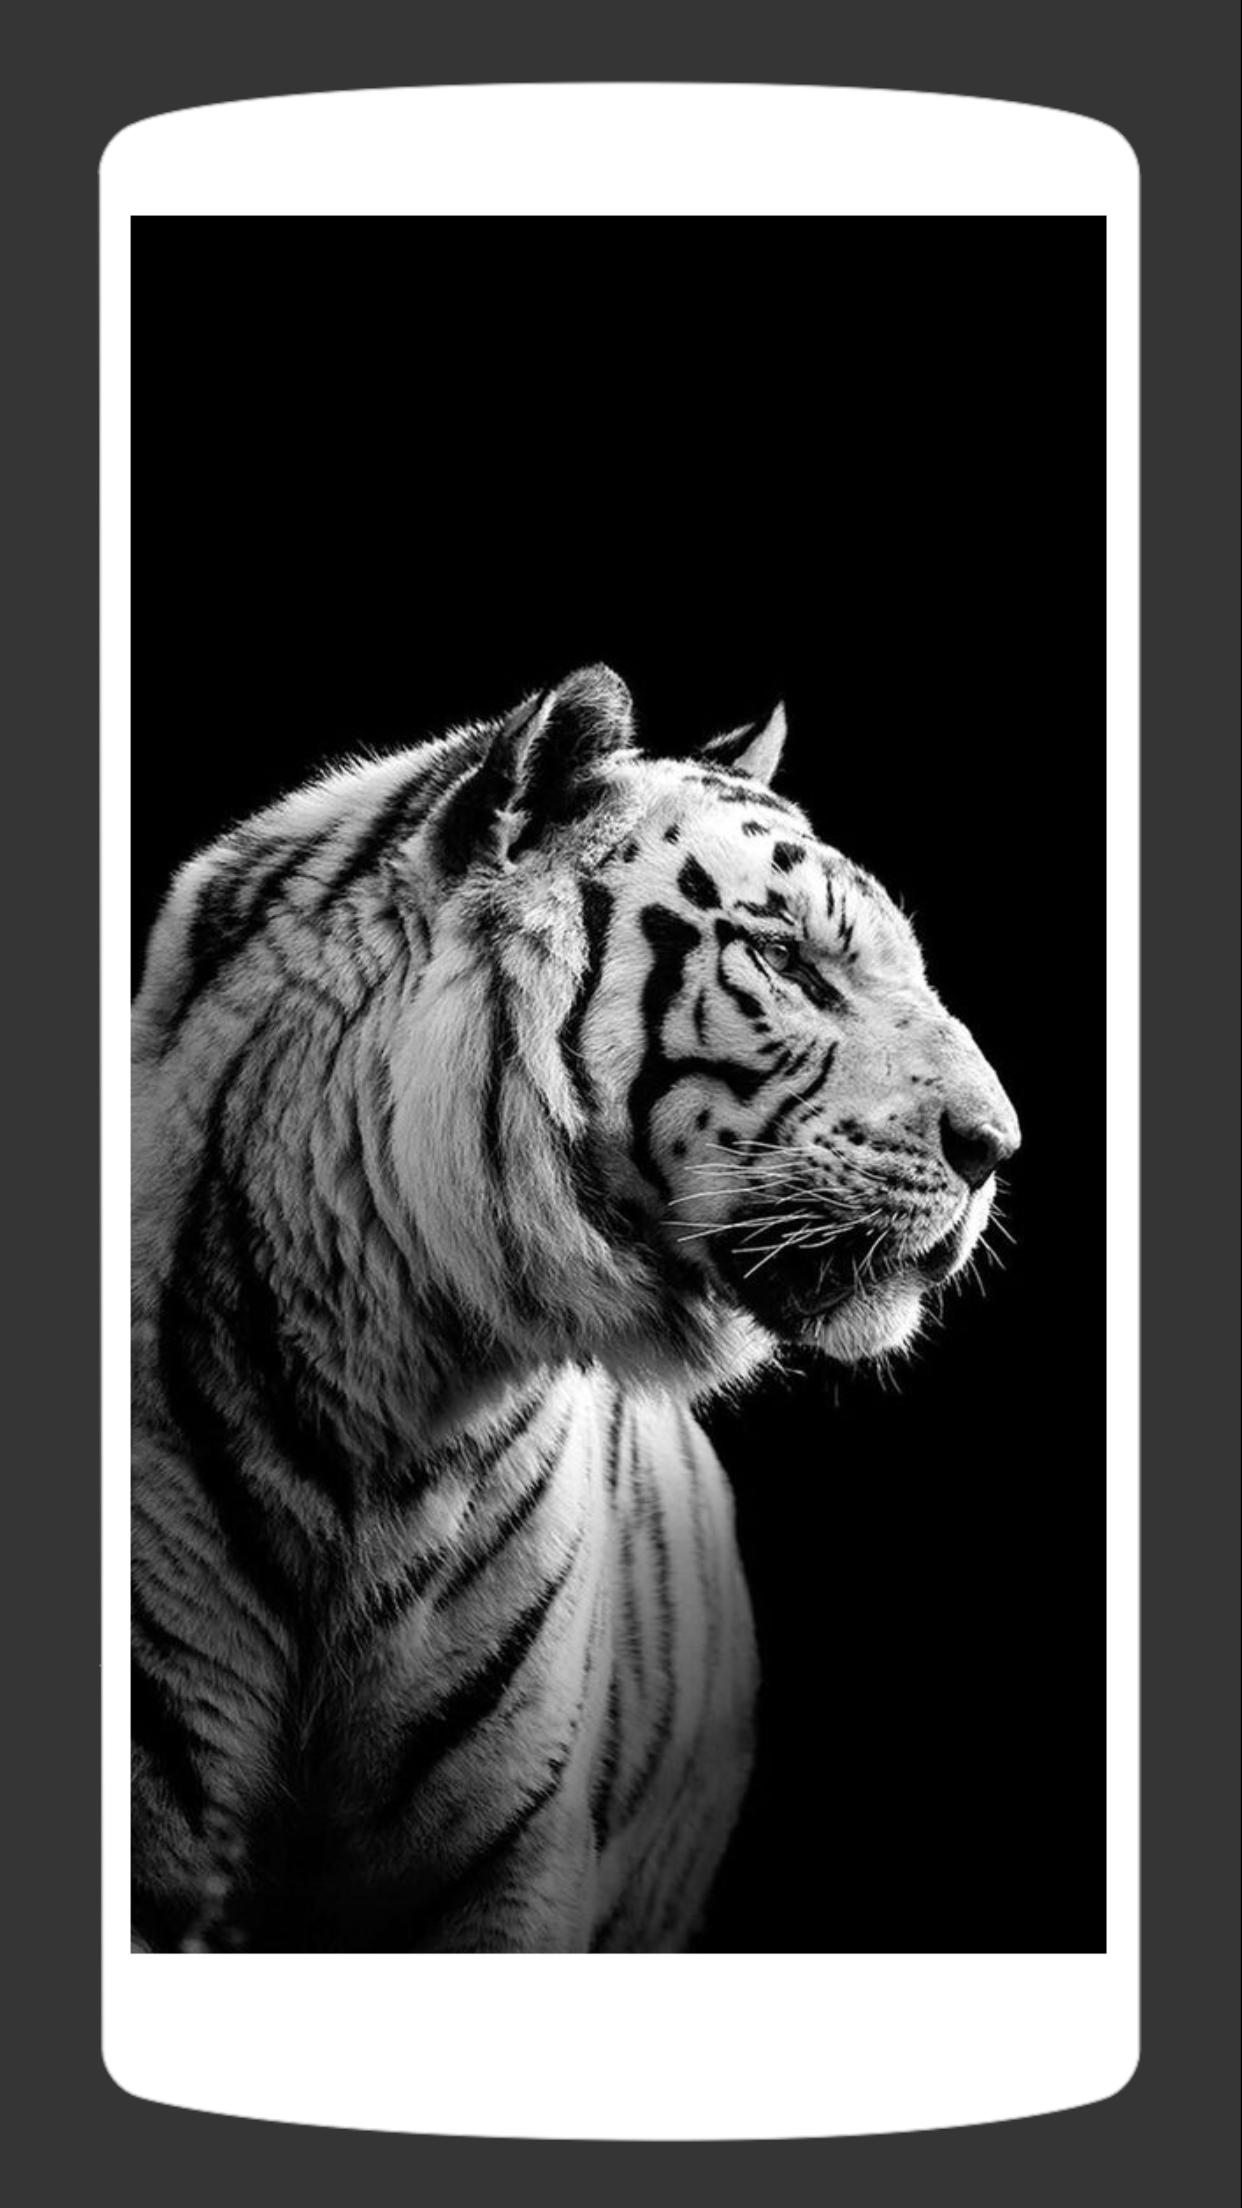 White Tiger Wallpaper Hd 4k For Android Apk Download